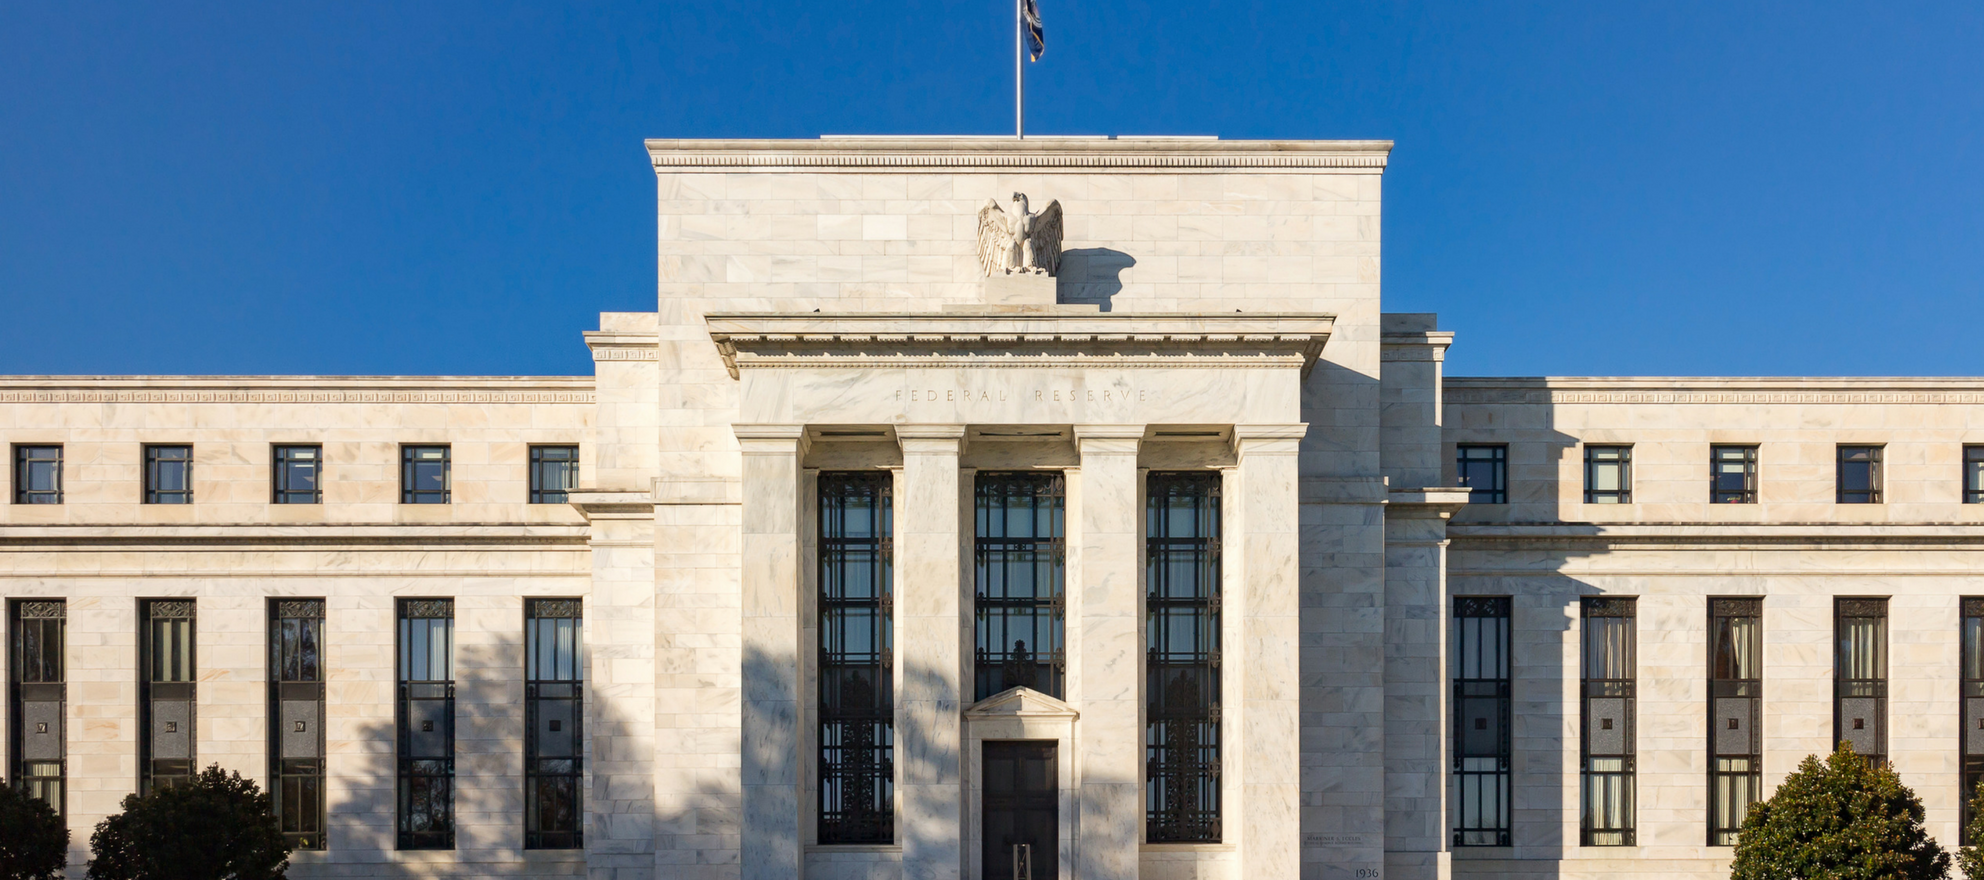 The Fed raised interest rates 0.25%, the second hike this year